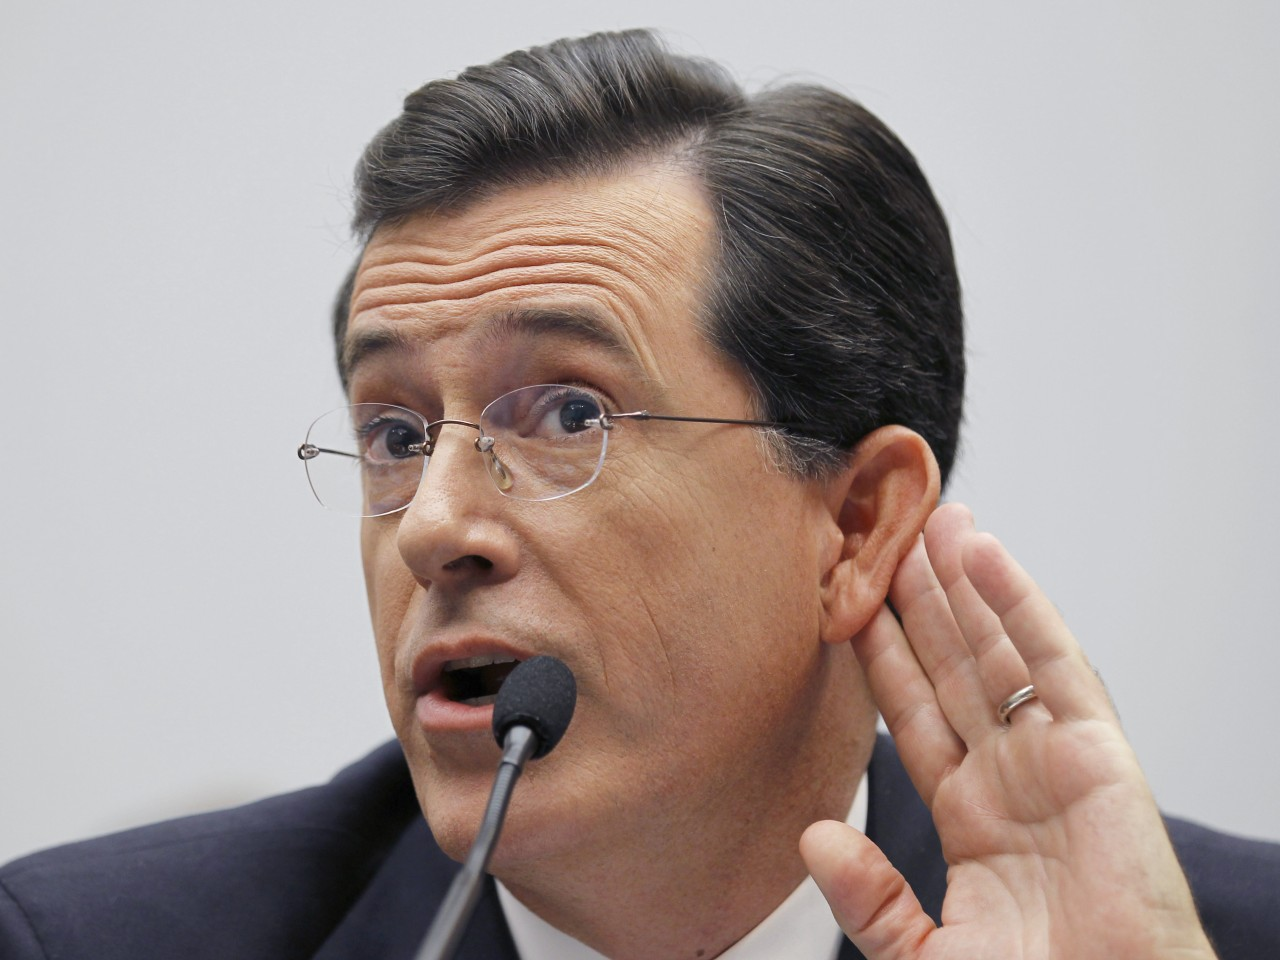 stephen colbert wallpapers high resolution and quality download